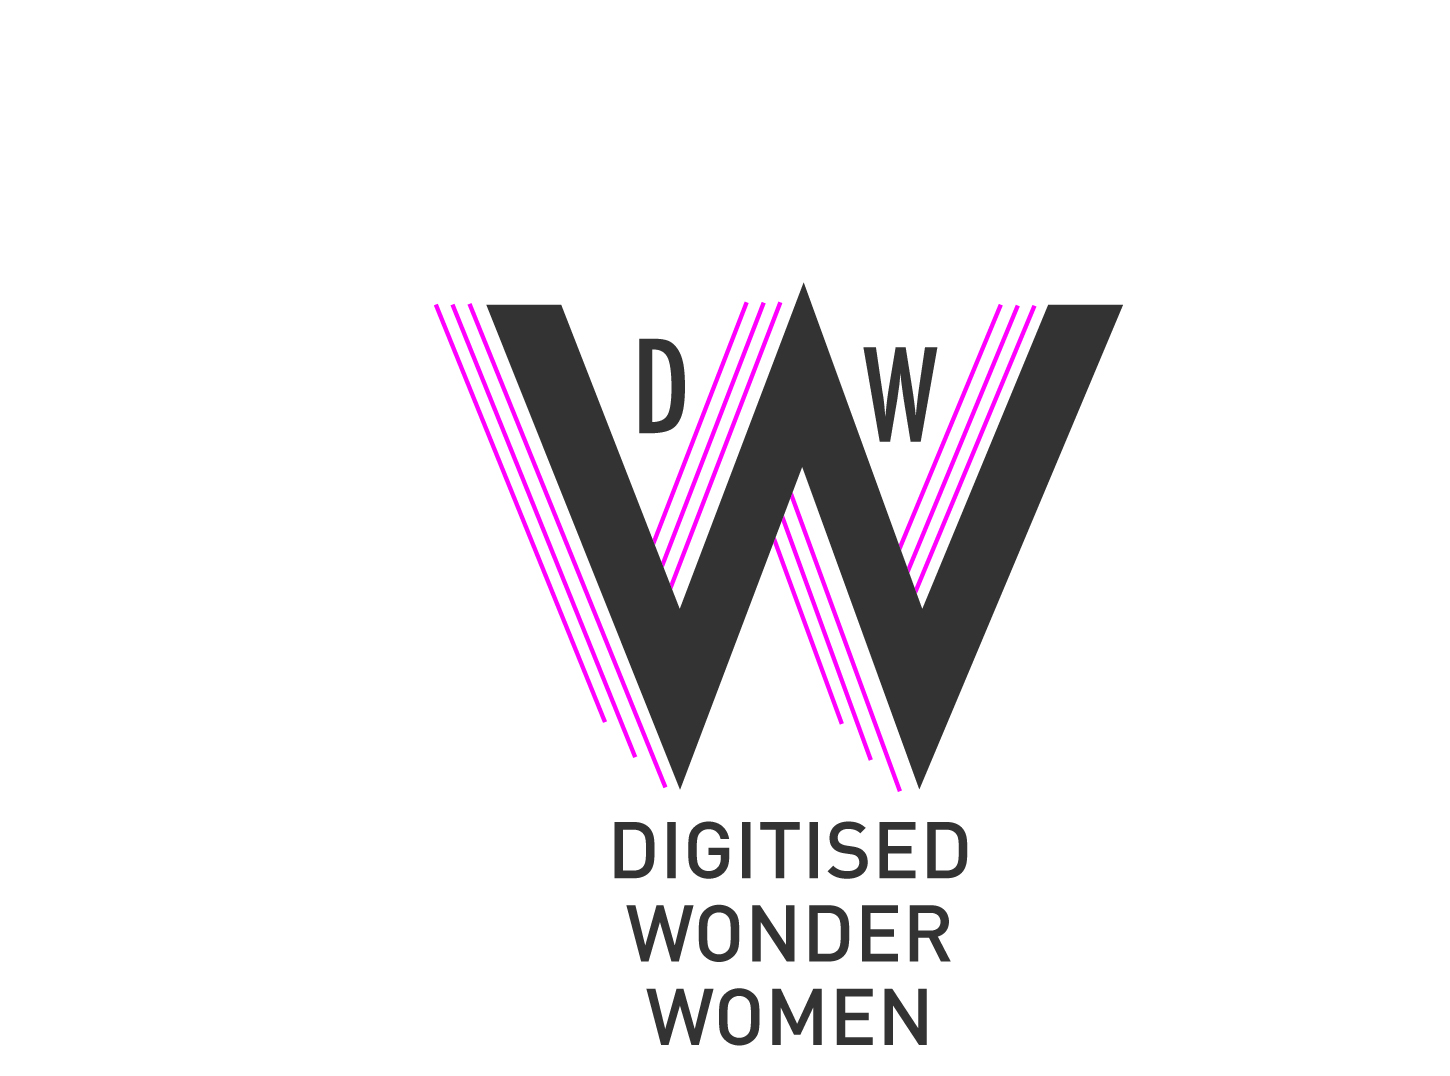 Digitised Wonder Women